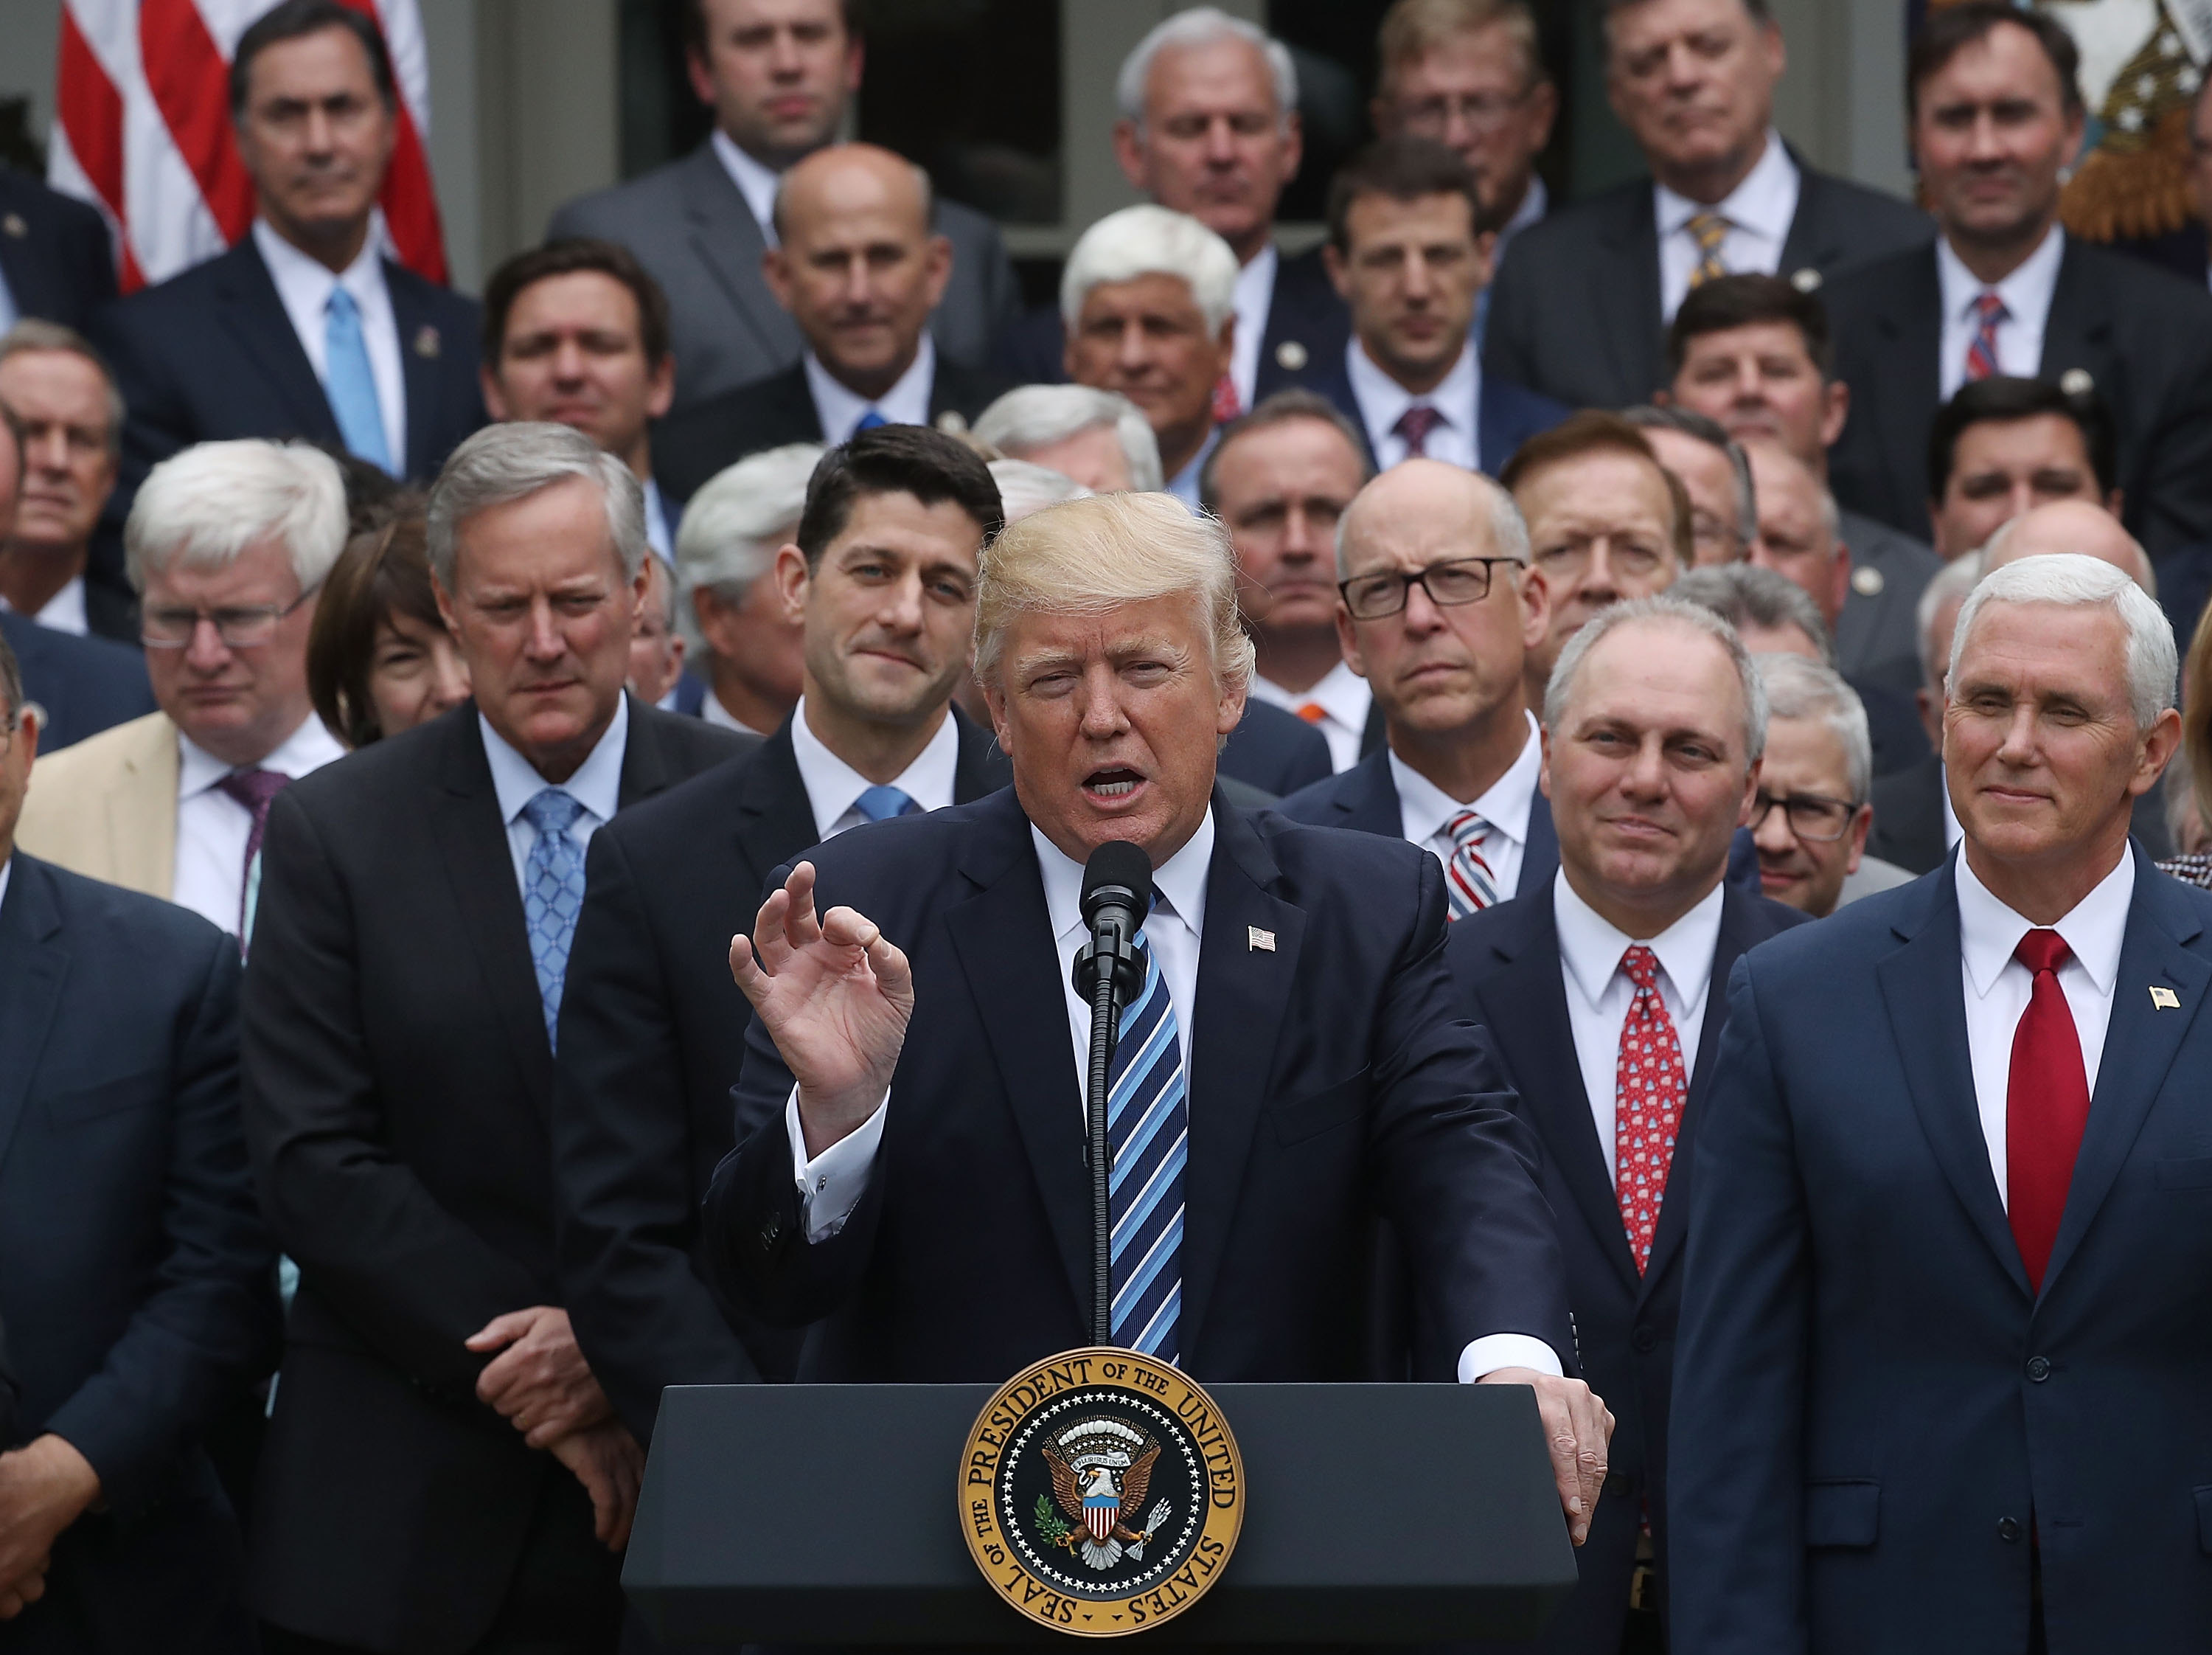 President Donald Trump speaks while flanked by House Republicans after they passed legislation aimed at repealing and replacing ObamaCare, during an event in the Rose Garden at the White House, on May 4, 2017 in Washington, DC. The House bill would still need to pass the Senate before being signed into law. (Getty Images)